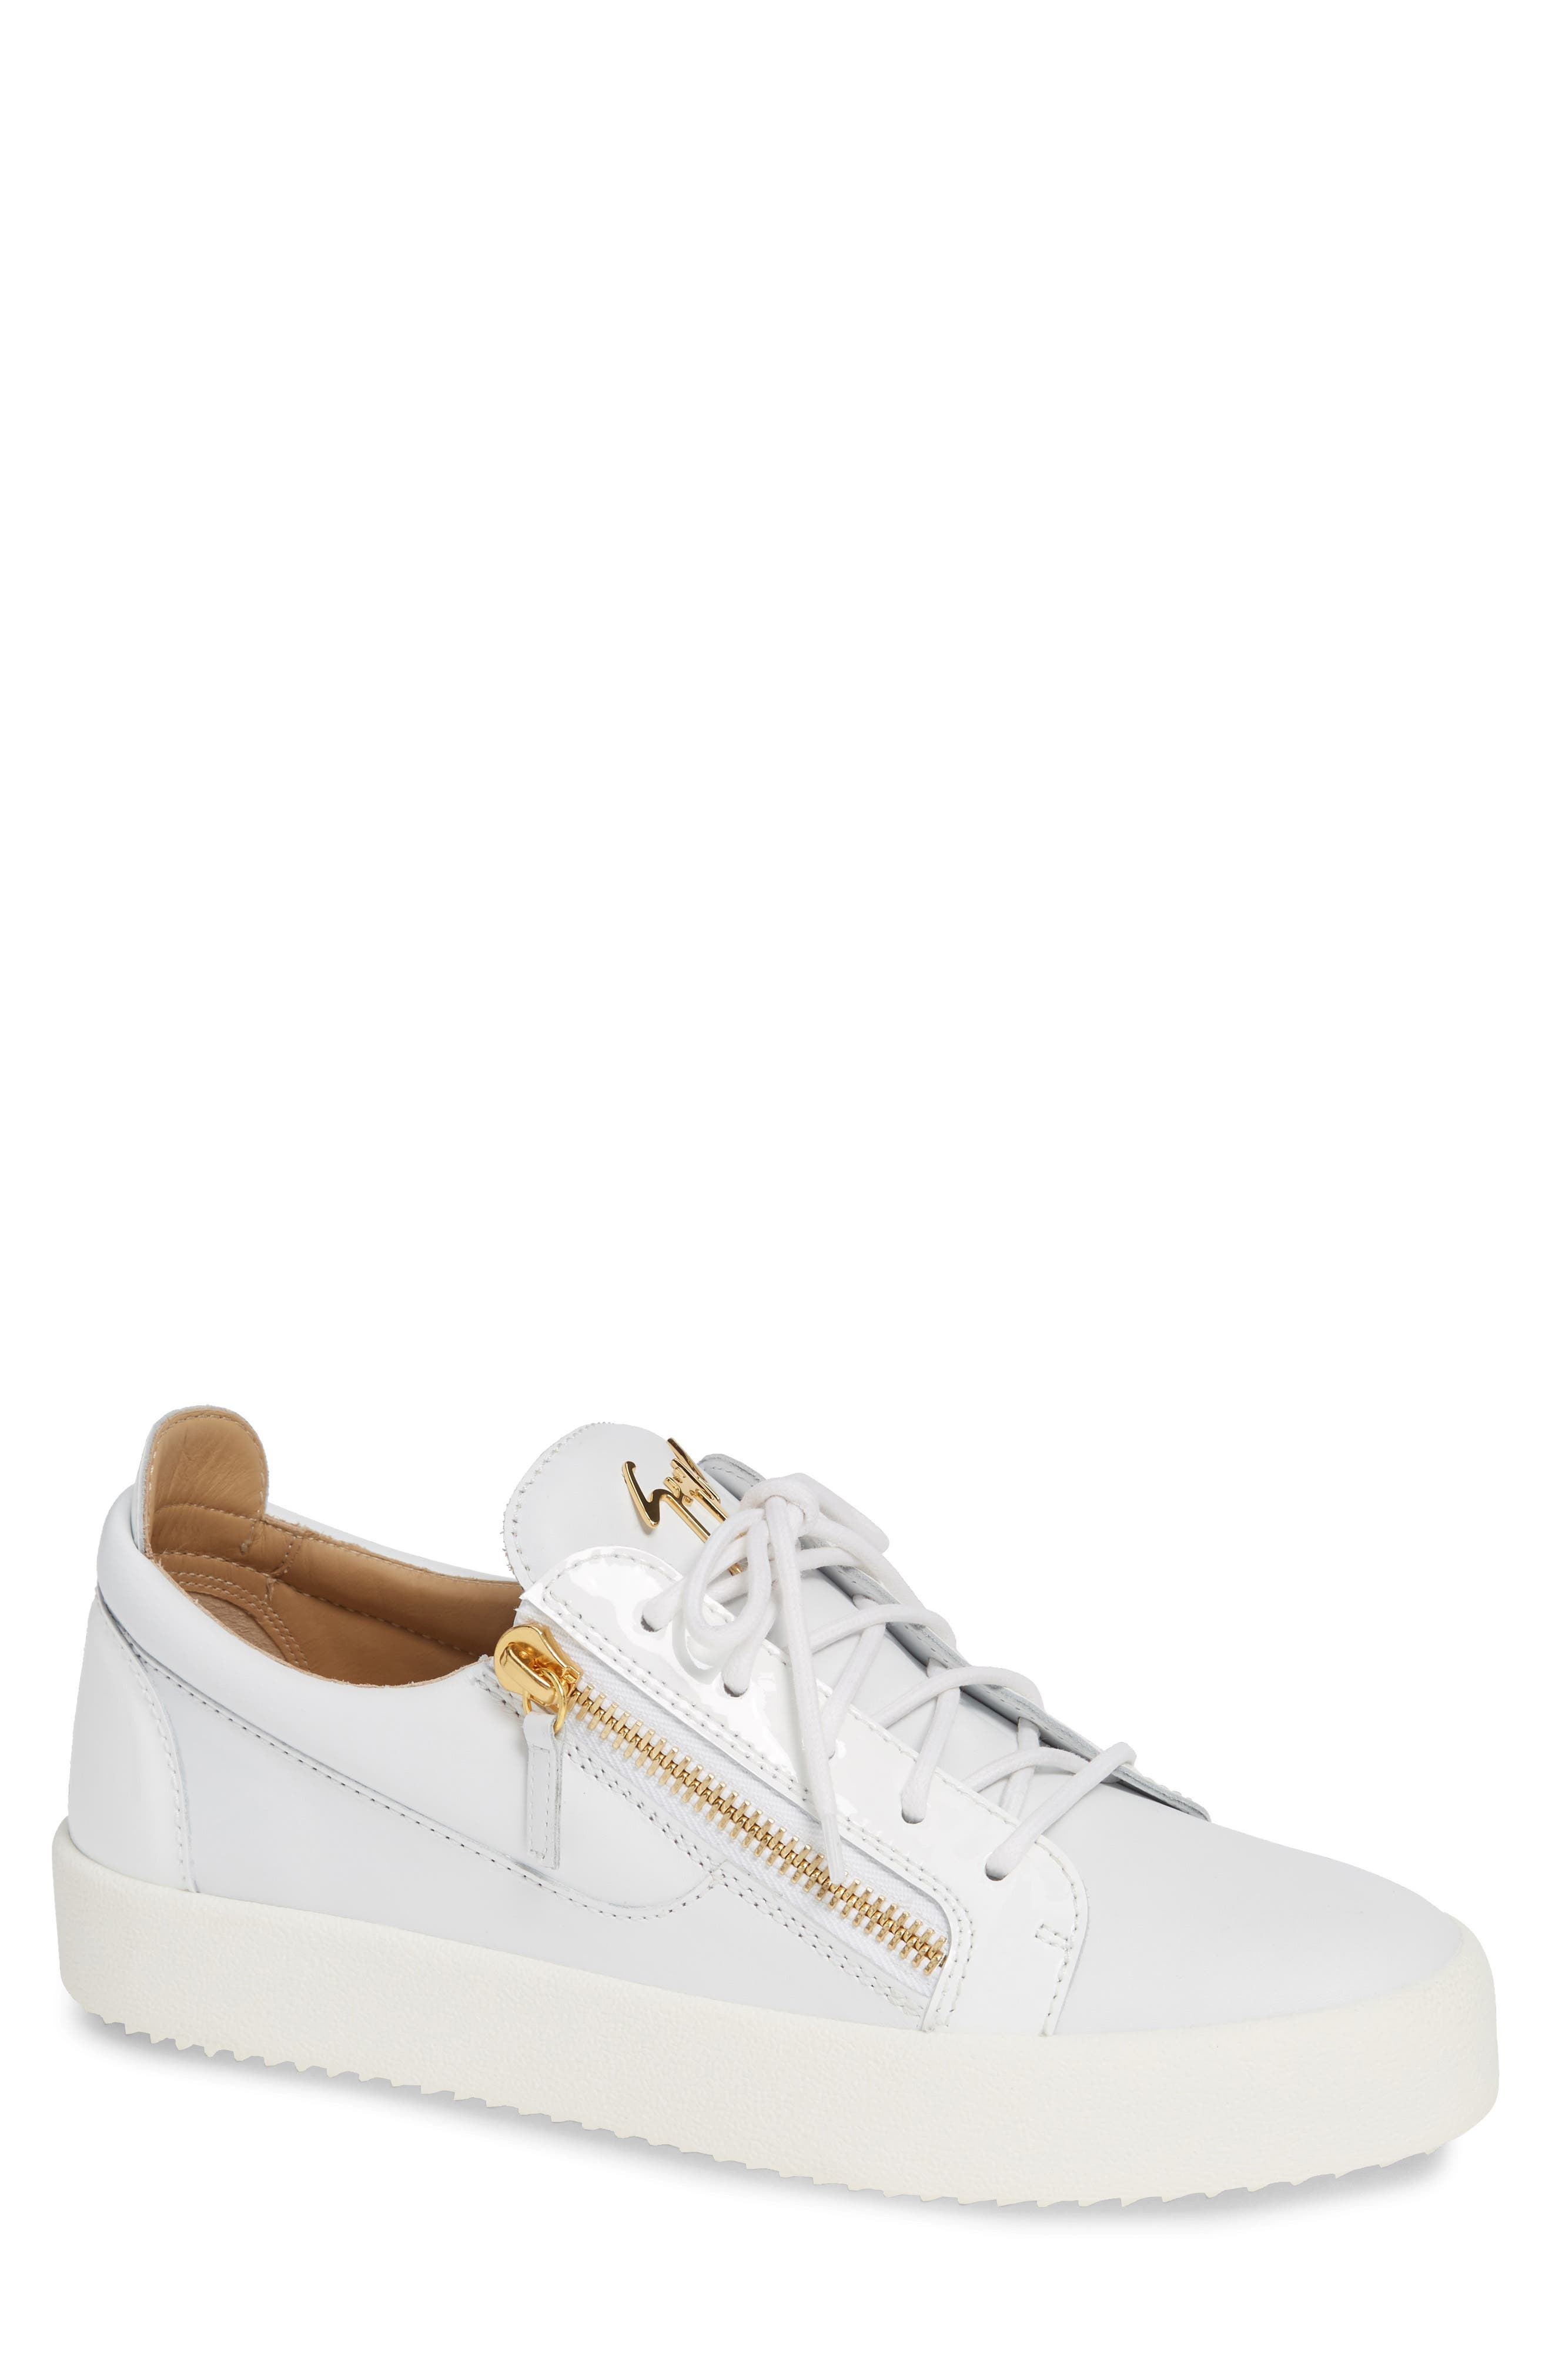 Low Top Sneaker,                         Main,                         color, WHITE